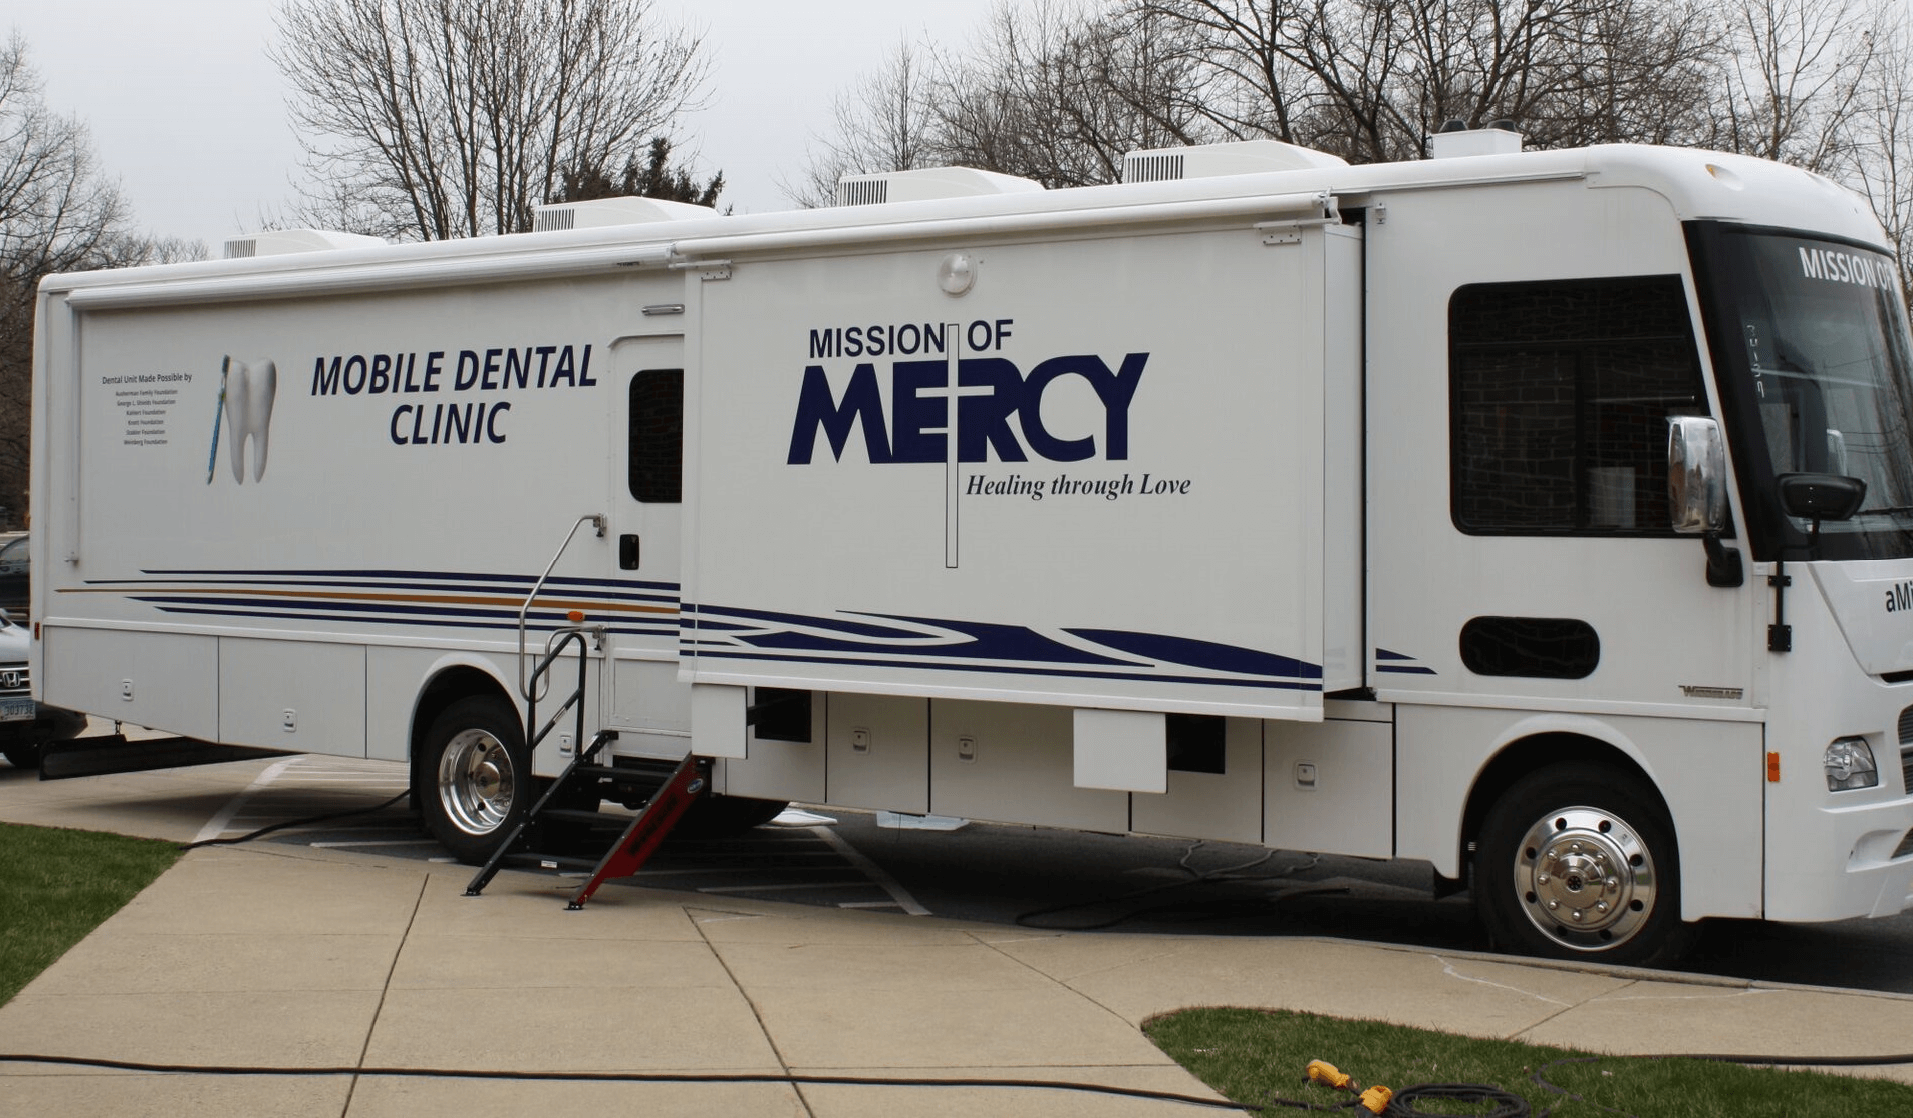 Mission of Mercy expands dental program with new state-of-the art- mobile Dental Clinic